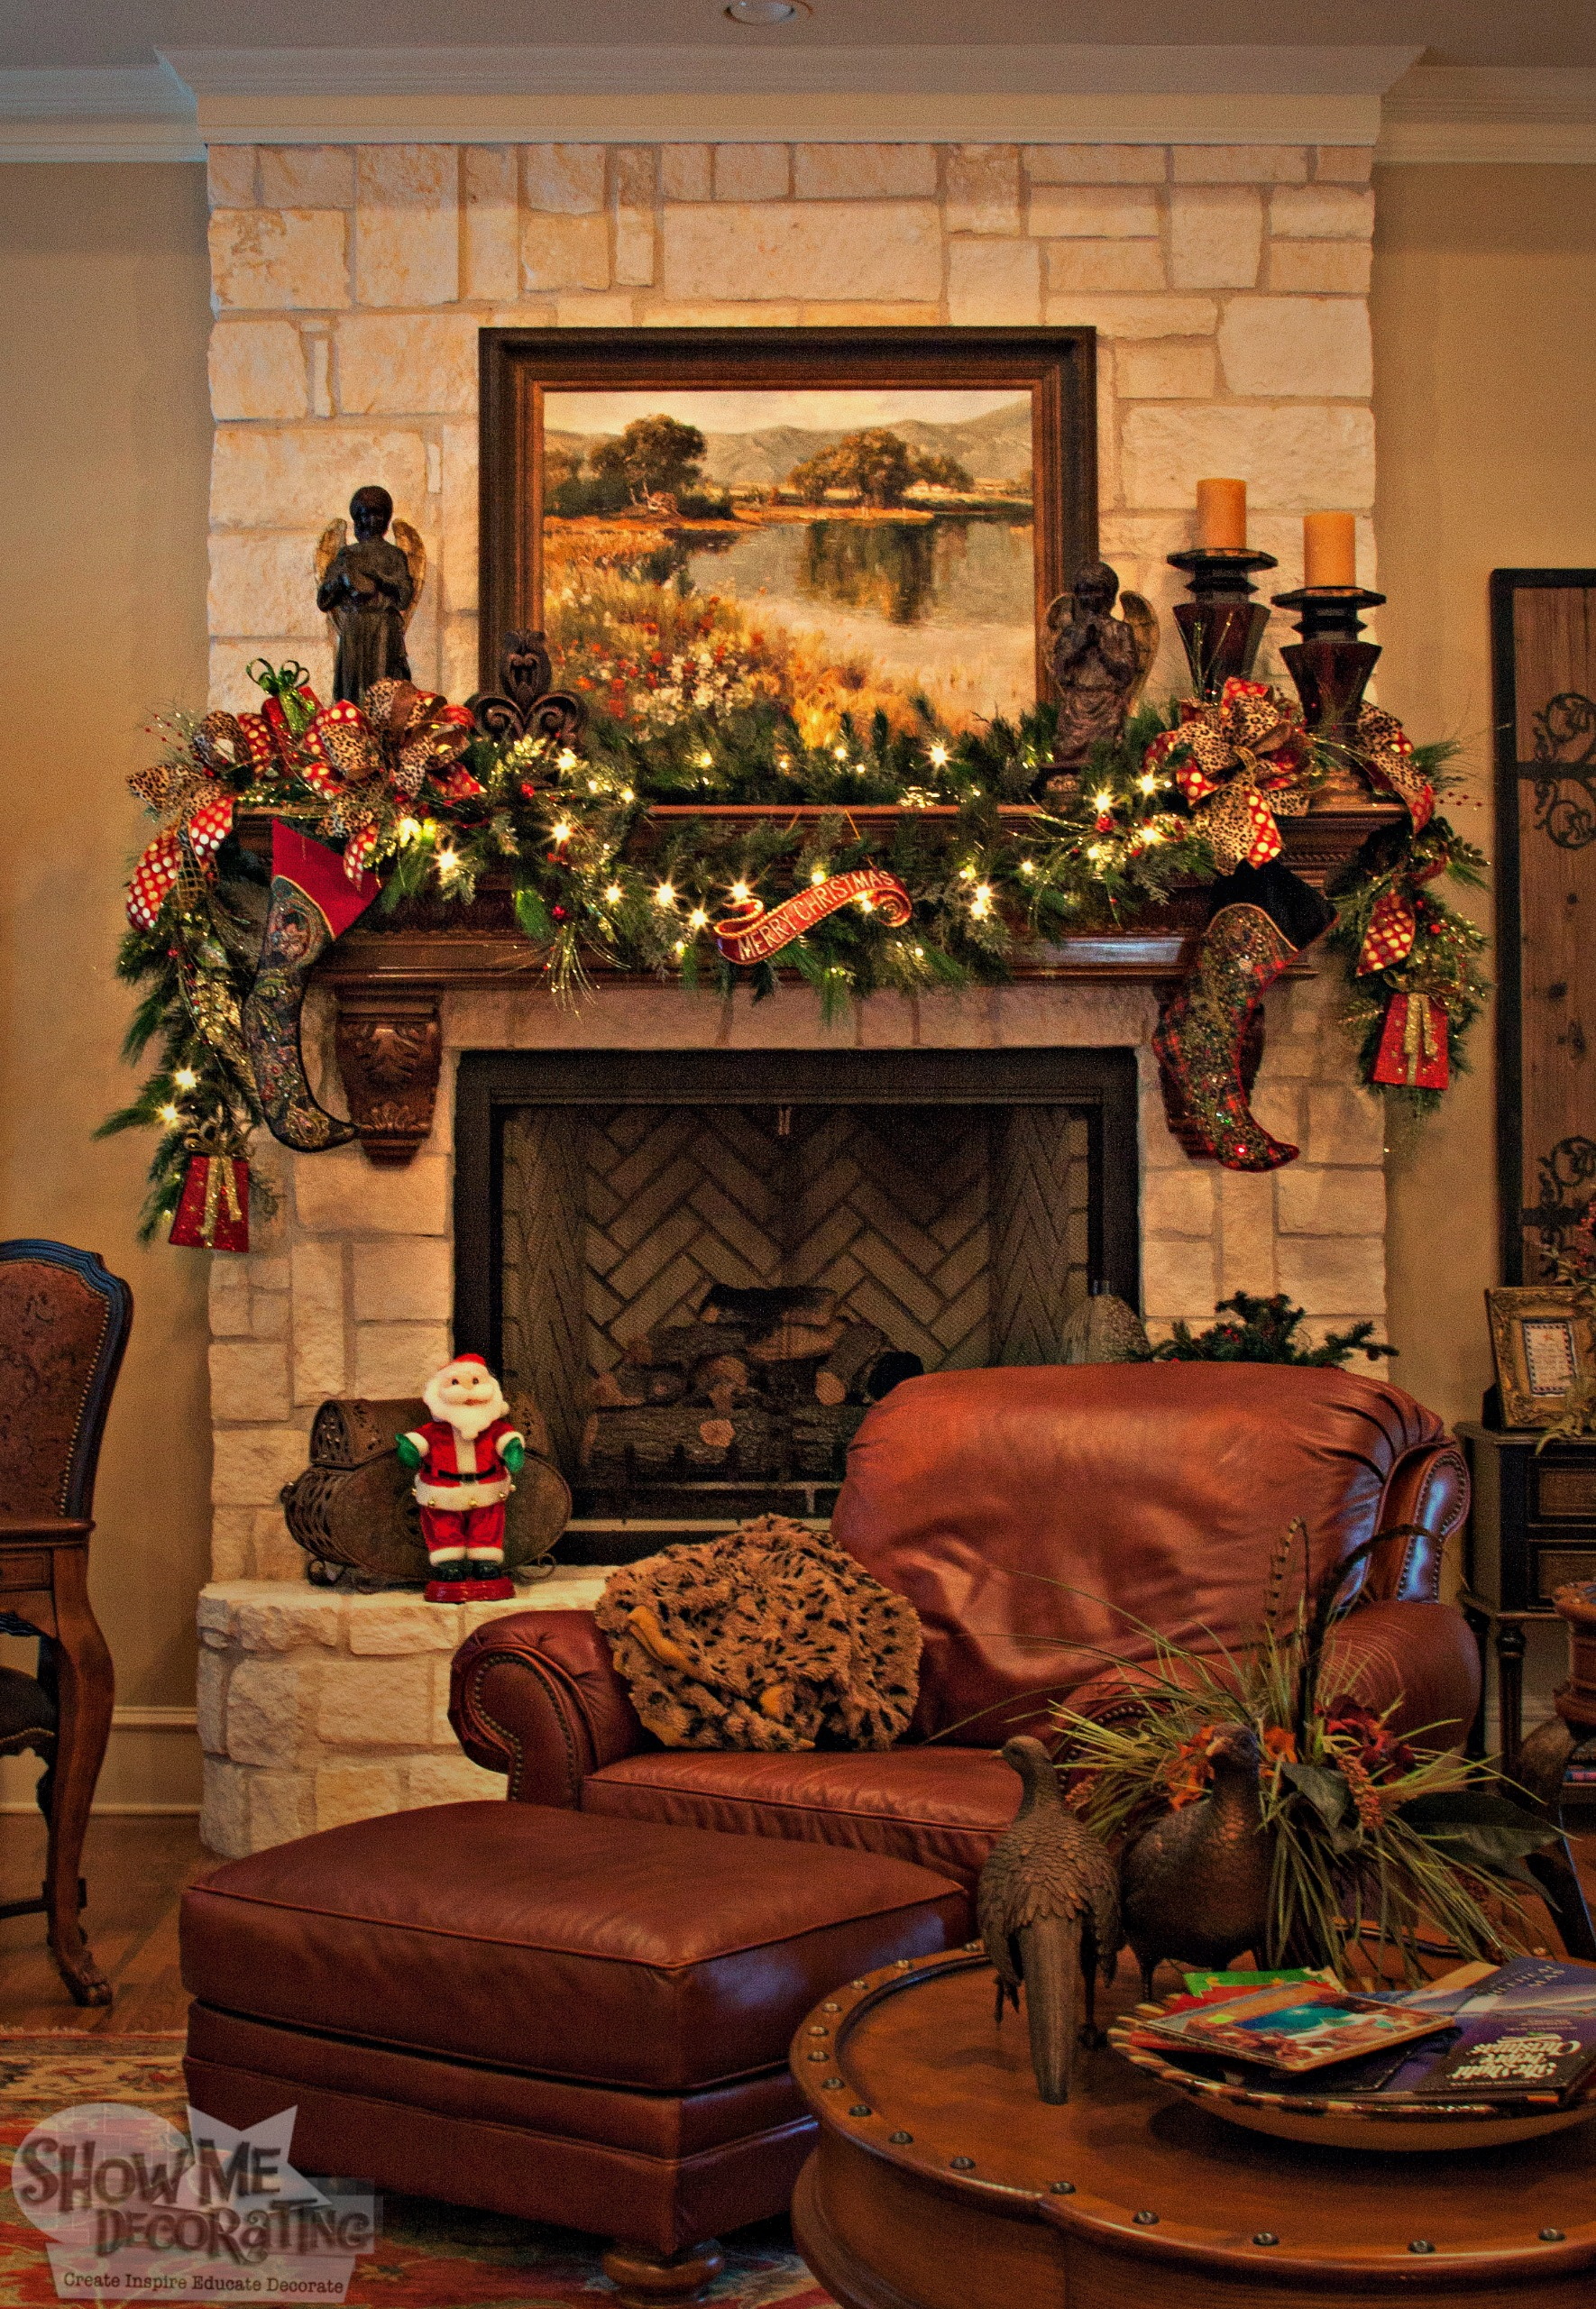 Living Room Xmas Menu show me decorating | create. inspire. educate. decorate.